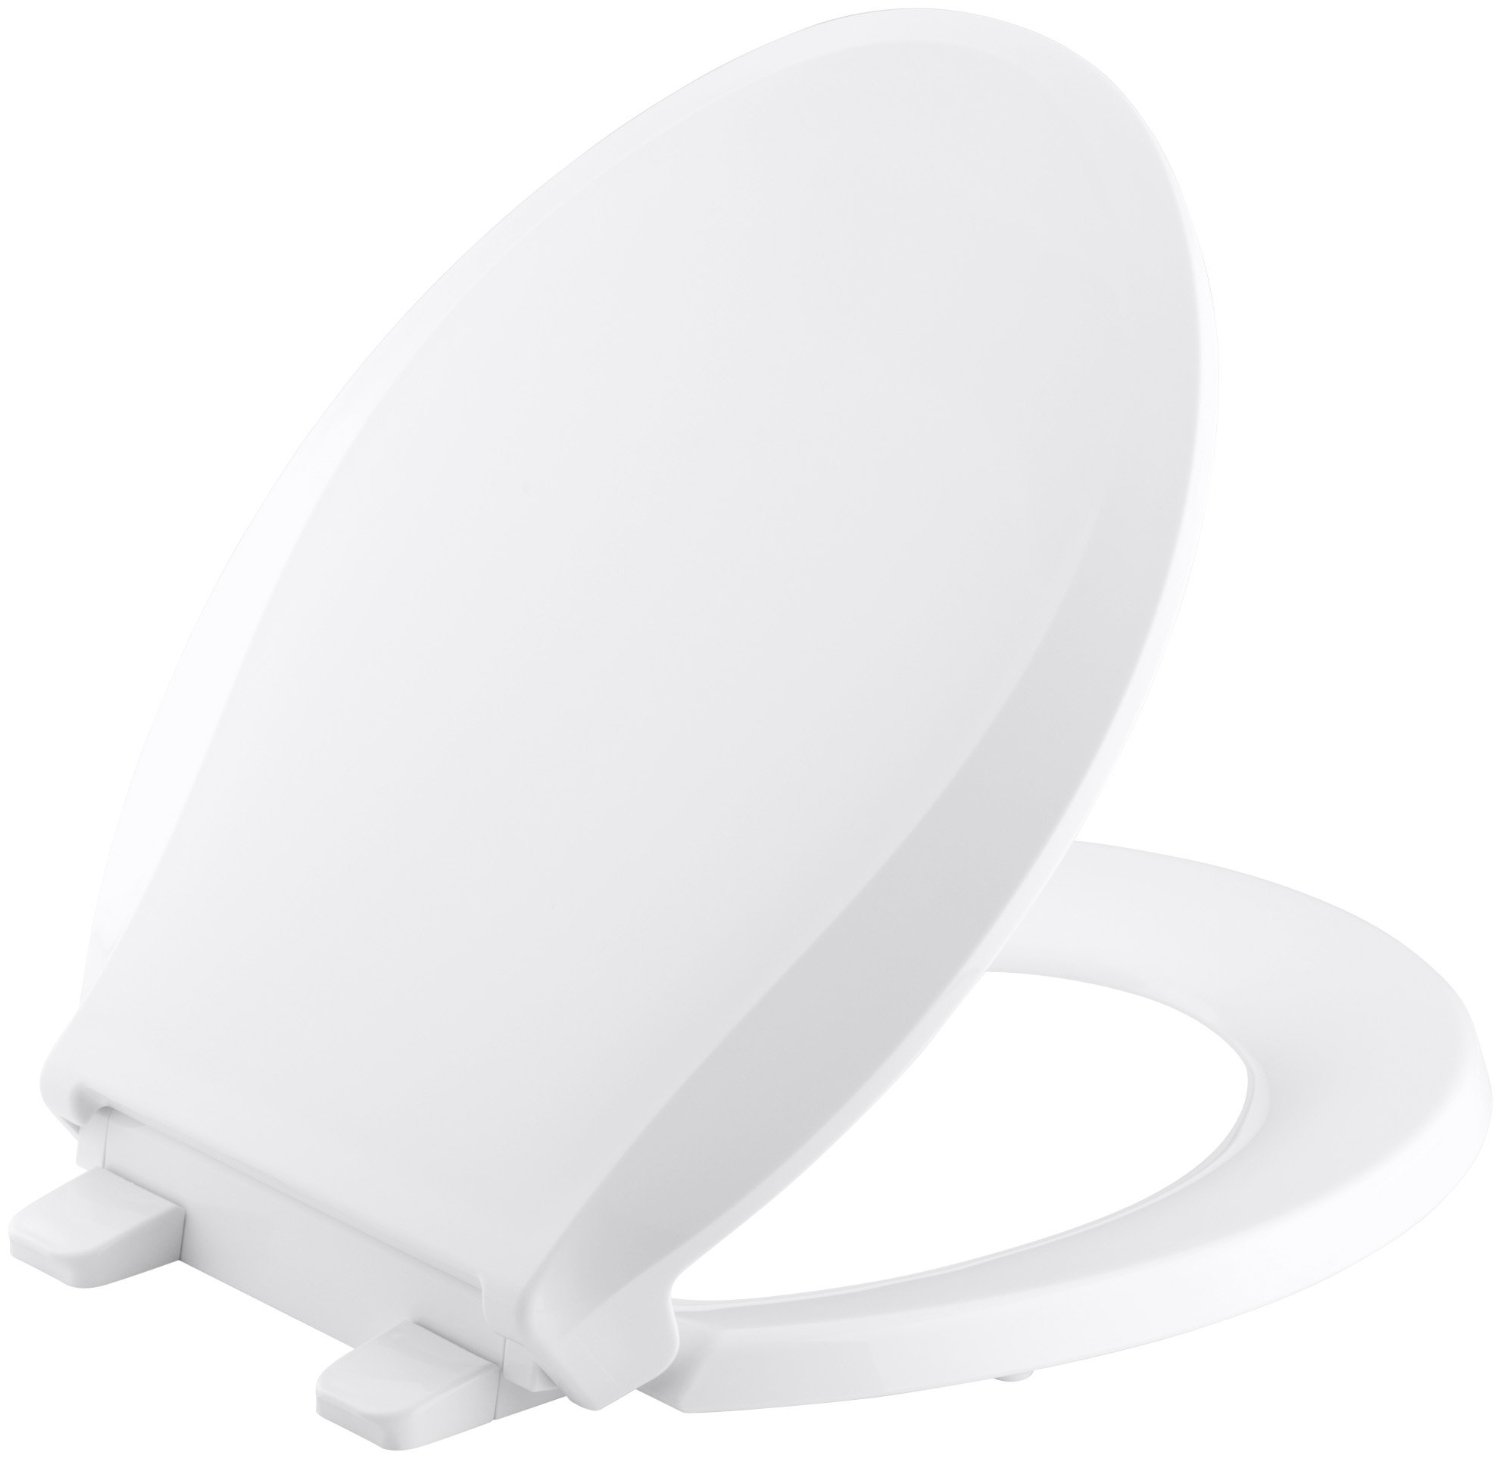 Best toilet on the market reviews - Kohler K Toilet Seat